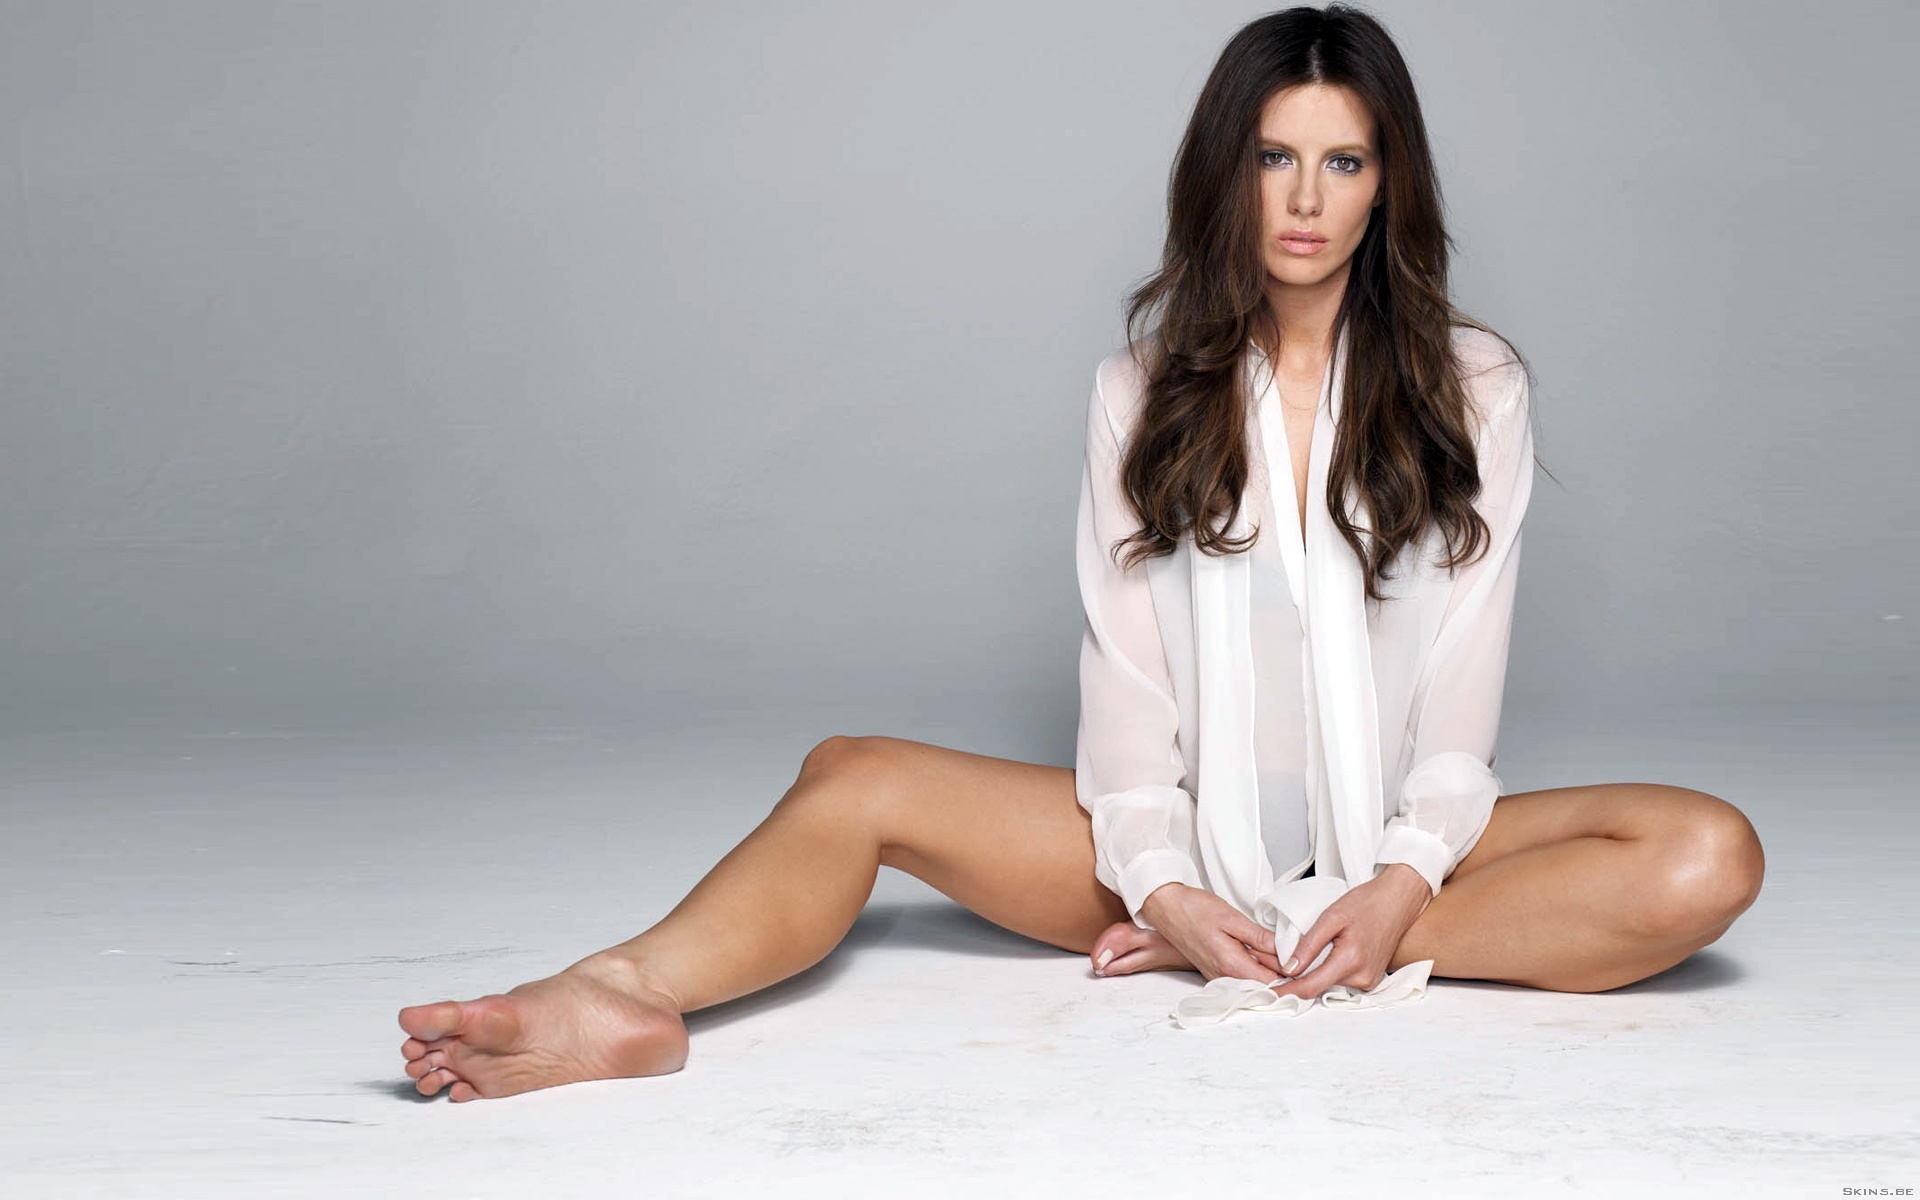 Kate Beckinsale Feet wallpaper 112663 1920x1200